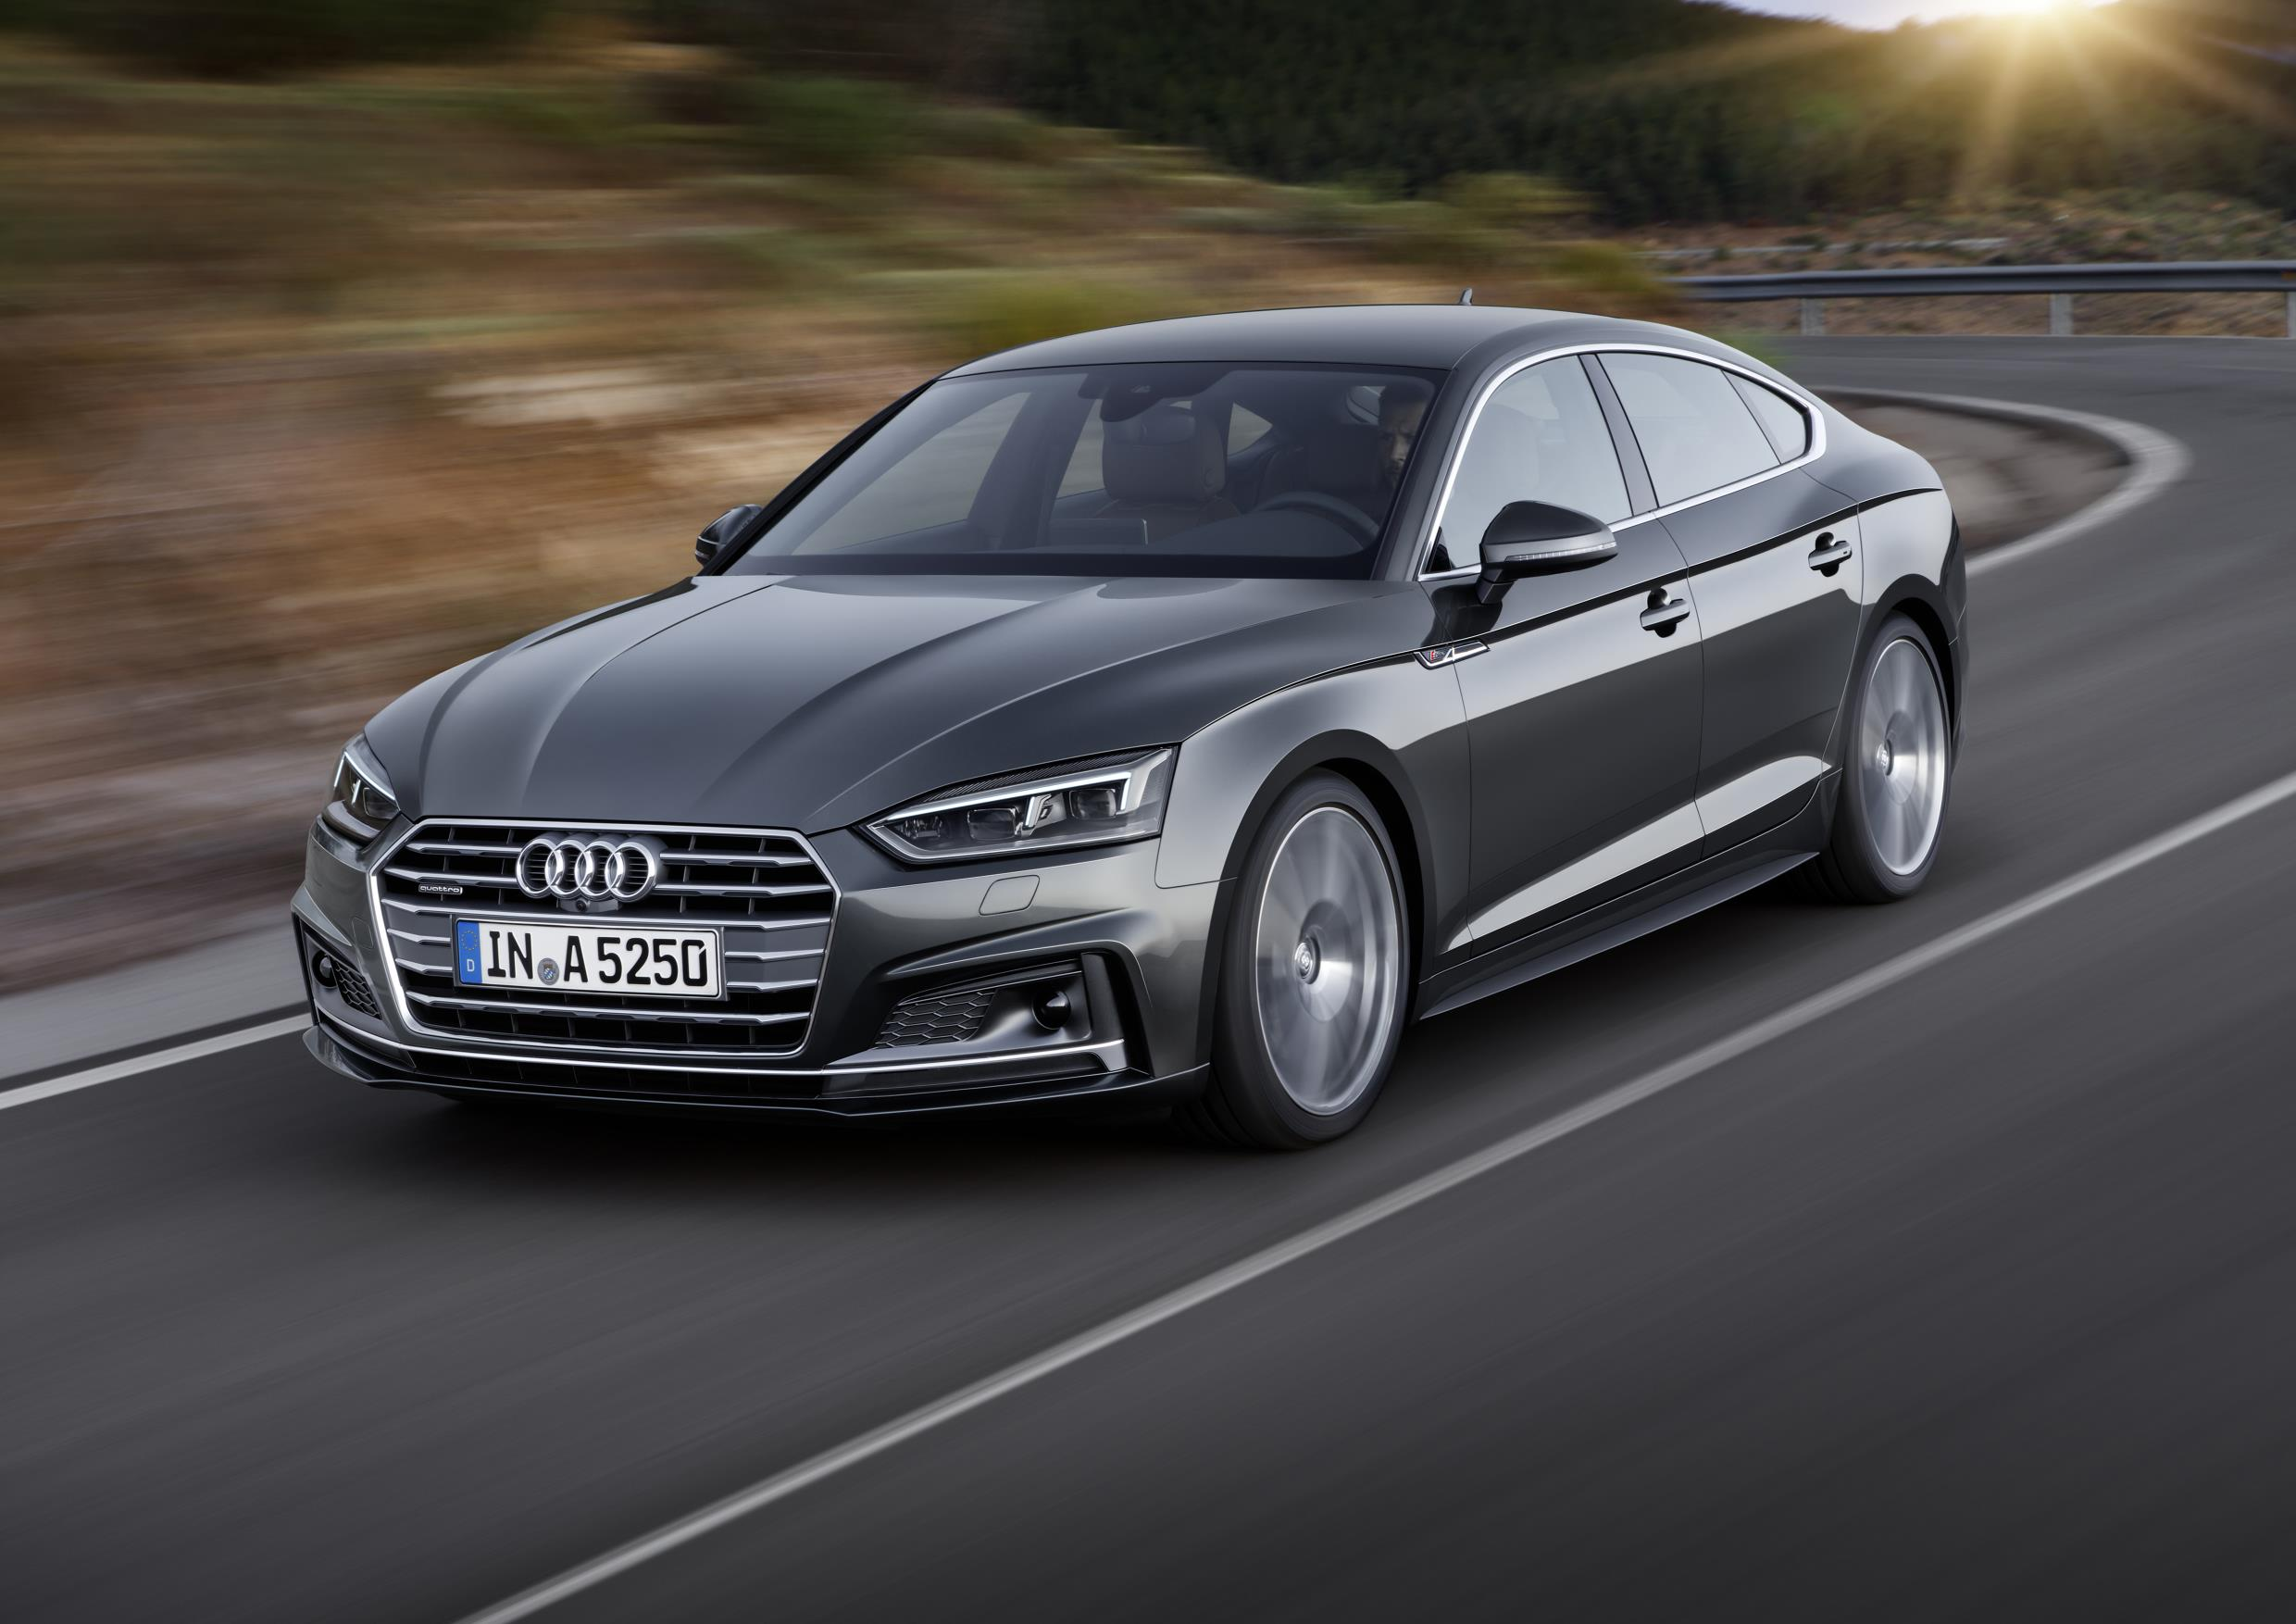 north lease in and autolux for hollywood leasing sales audi